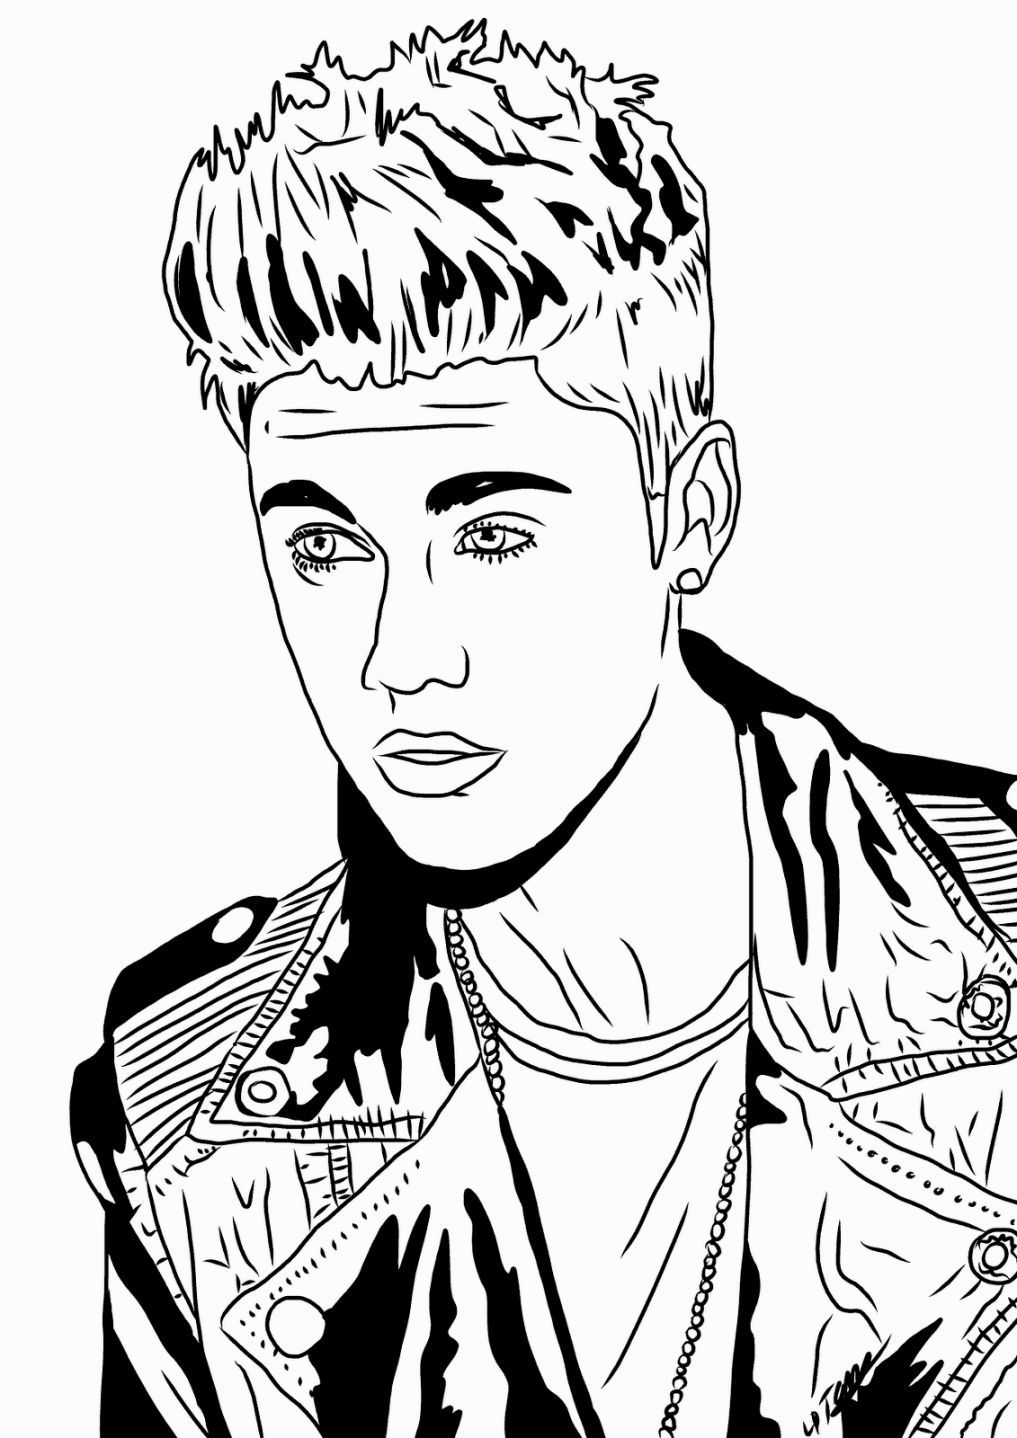 Coloring Sheets Justin Bieber | Coloring Pages | Pinterest | Justin ...